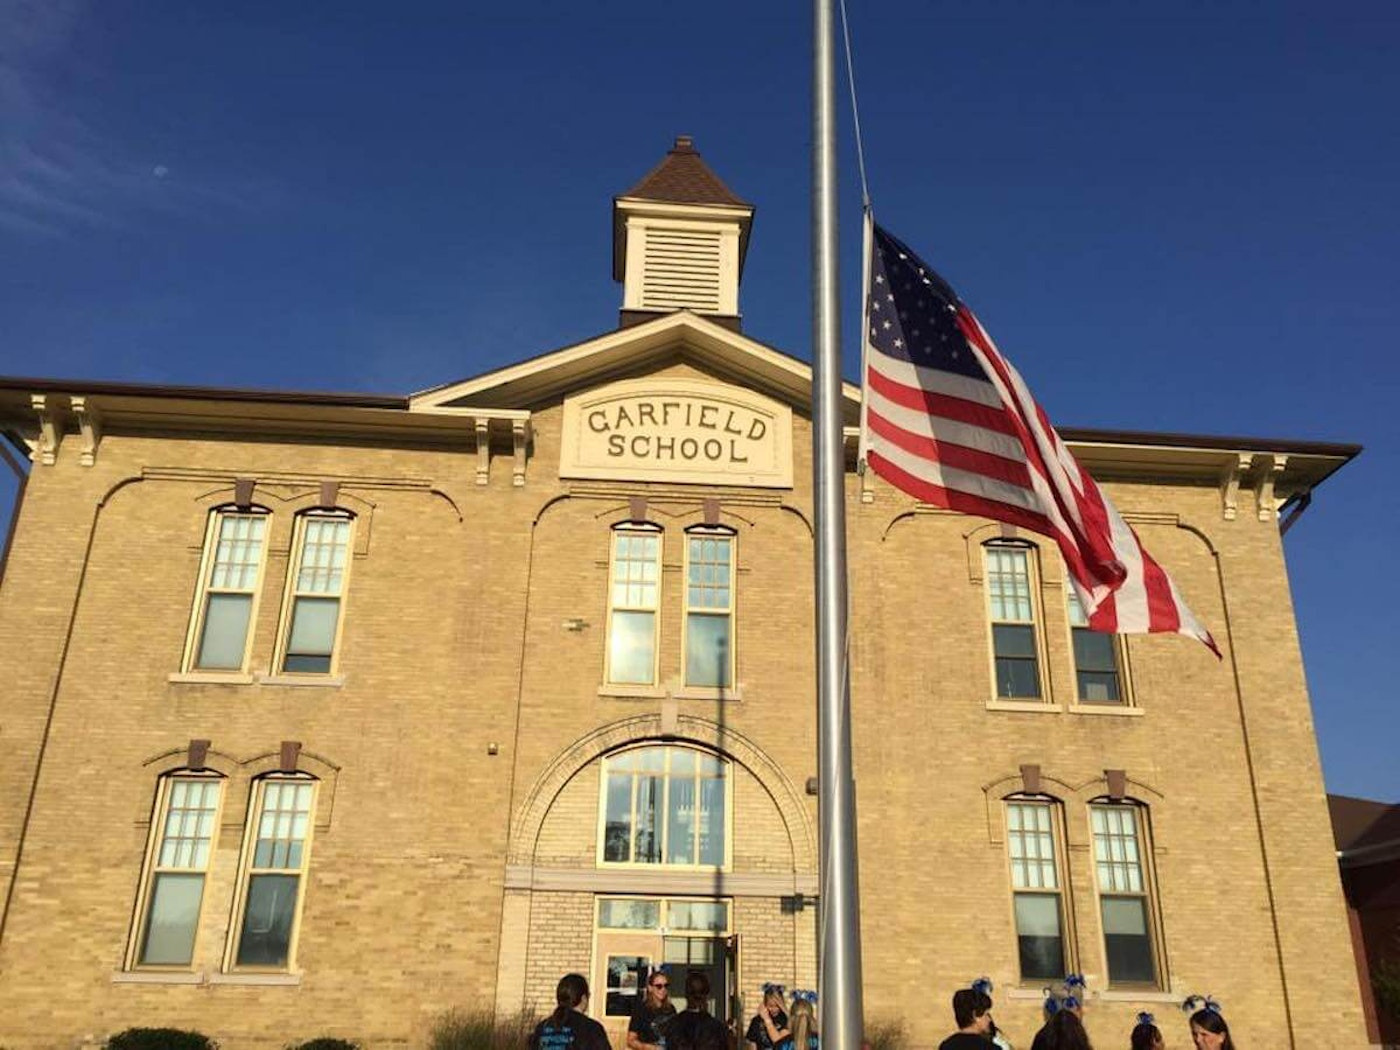 Julian Thomas Elementary School in Racine, built in the 1850s as Garfield School, will receive updates as part of the $1 billion referendum district voters passed in spring 2020. (Photo via Julian Thomas Elementary/Facebook)